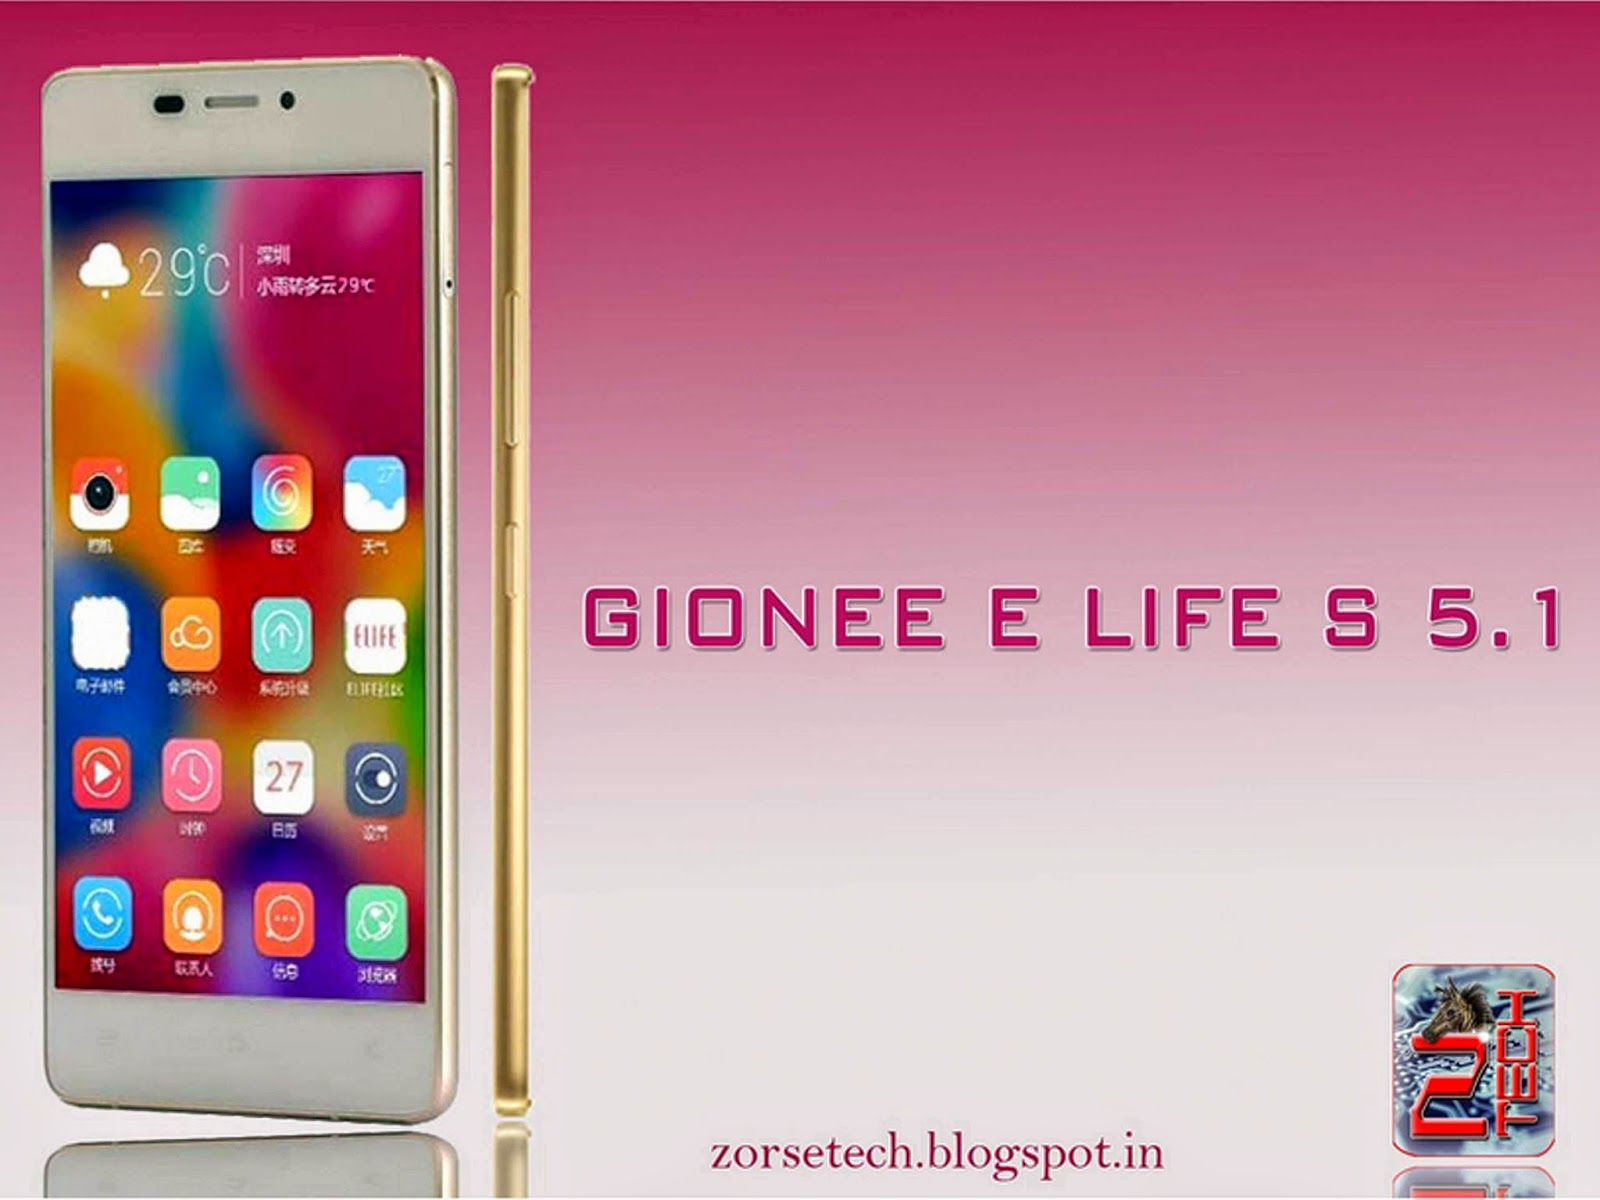 Gione E life S 5.1 have only 5.1 mm width, Android 4.3 jellybean os, 4.8 inch amoled display, 1 GB RAM, 16 GB memory